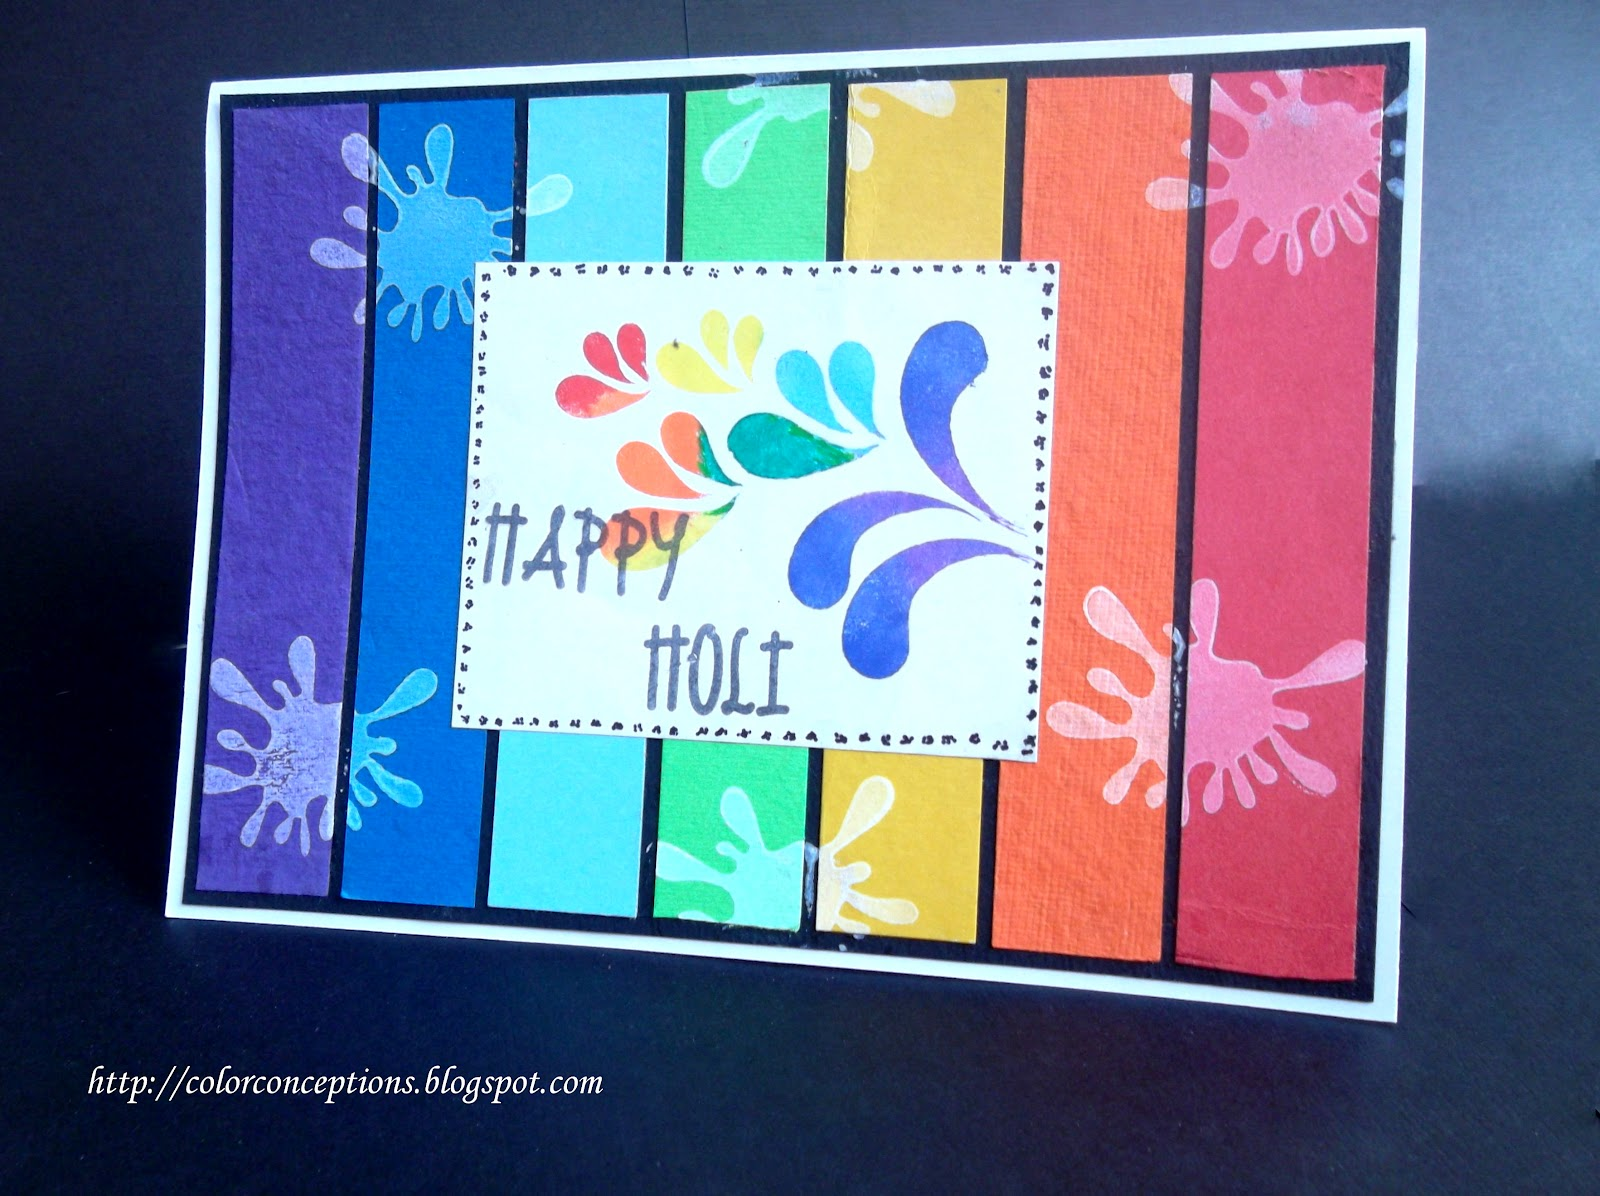 Lovely Holi Card Making Ideas Part - 14: Thursday, March 1, 2012